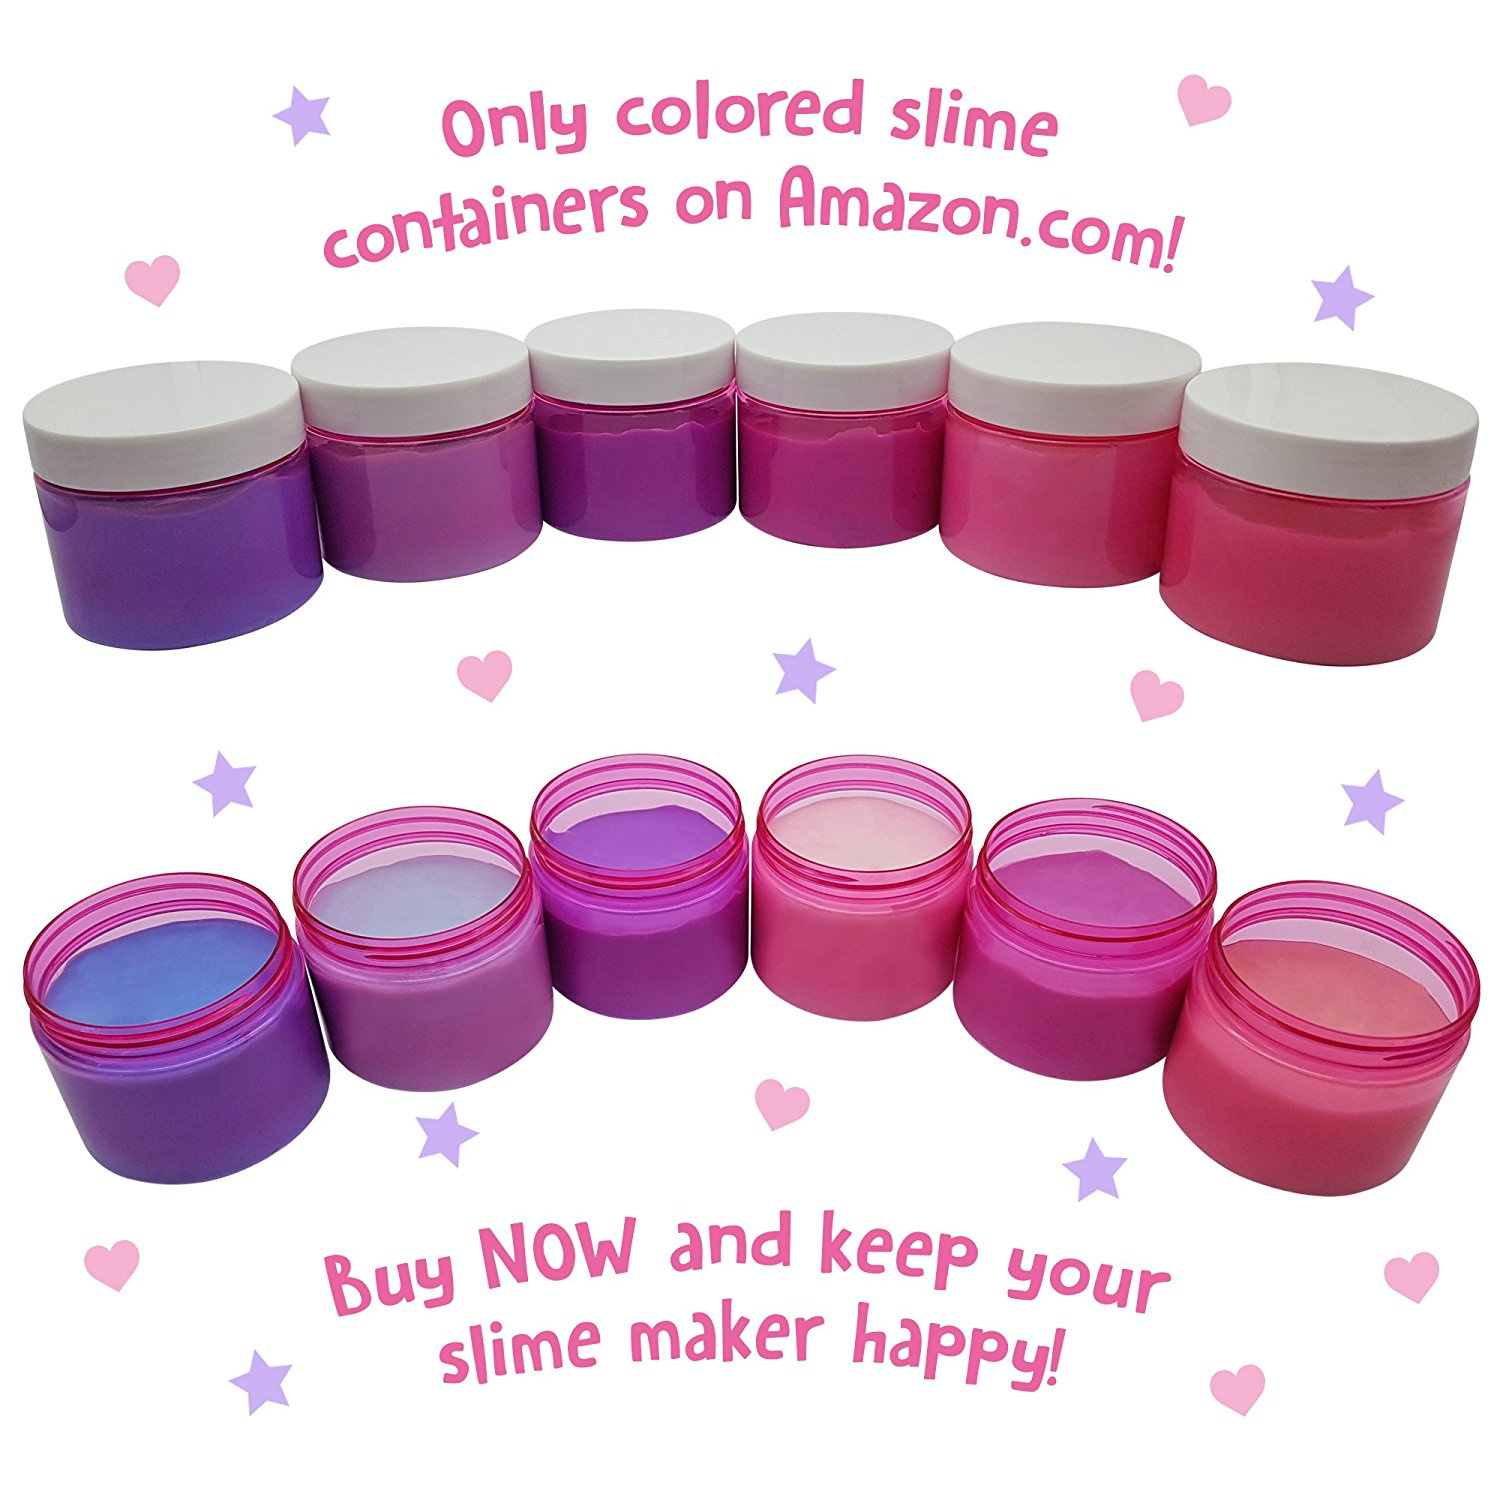 Novelty & Gag Toys Novelty & Gag Toys SWZY Slime with Poop Container